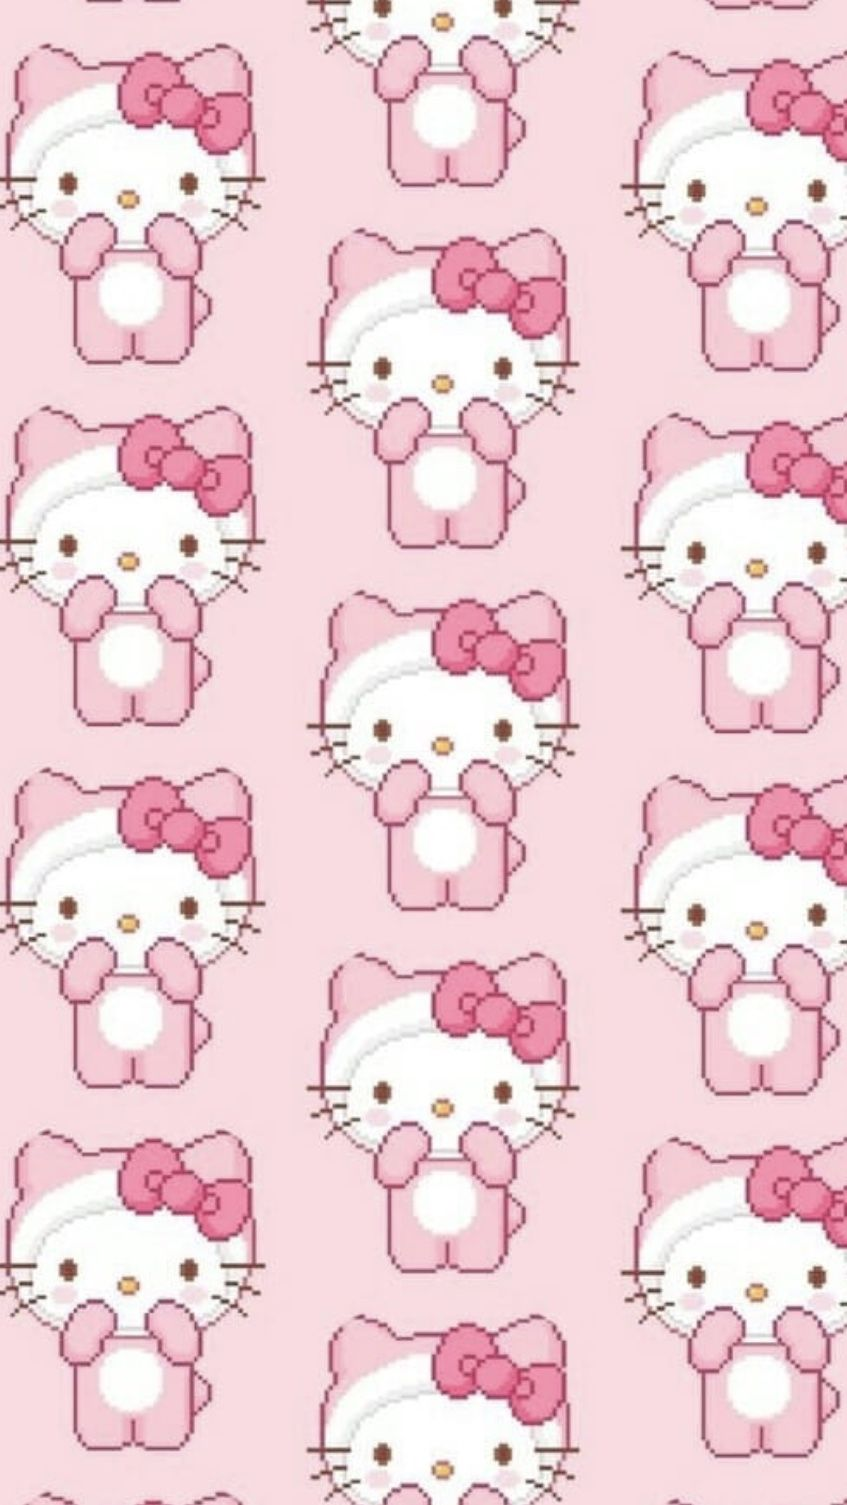 Kitty Iphone Wallpapers & Background 82+ Images